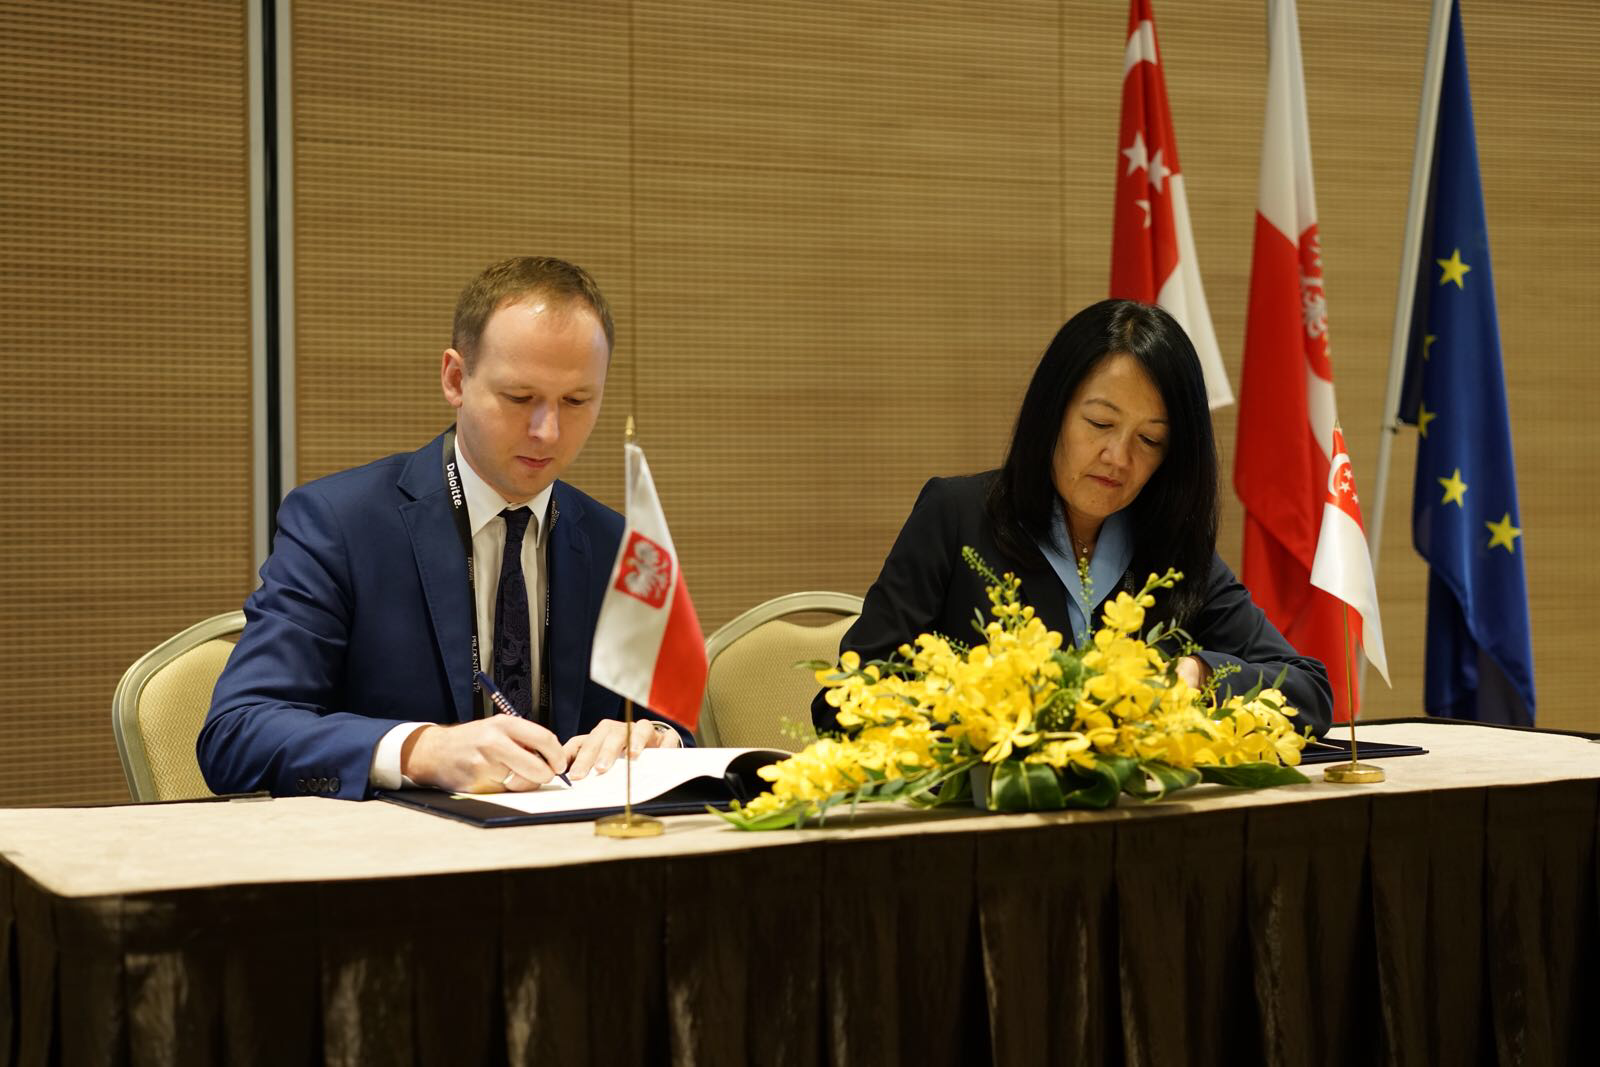 Marek Chrzanowski,KNF Chairman and Jacqueline Loh, MAS Deputy Managing Director signing FinTech co-operation agreement at the ongoing Singapore Fintech Festival.